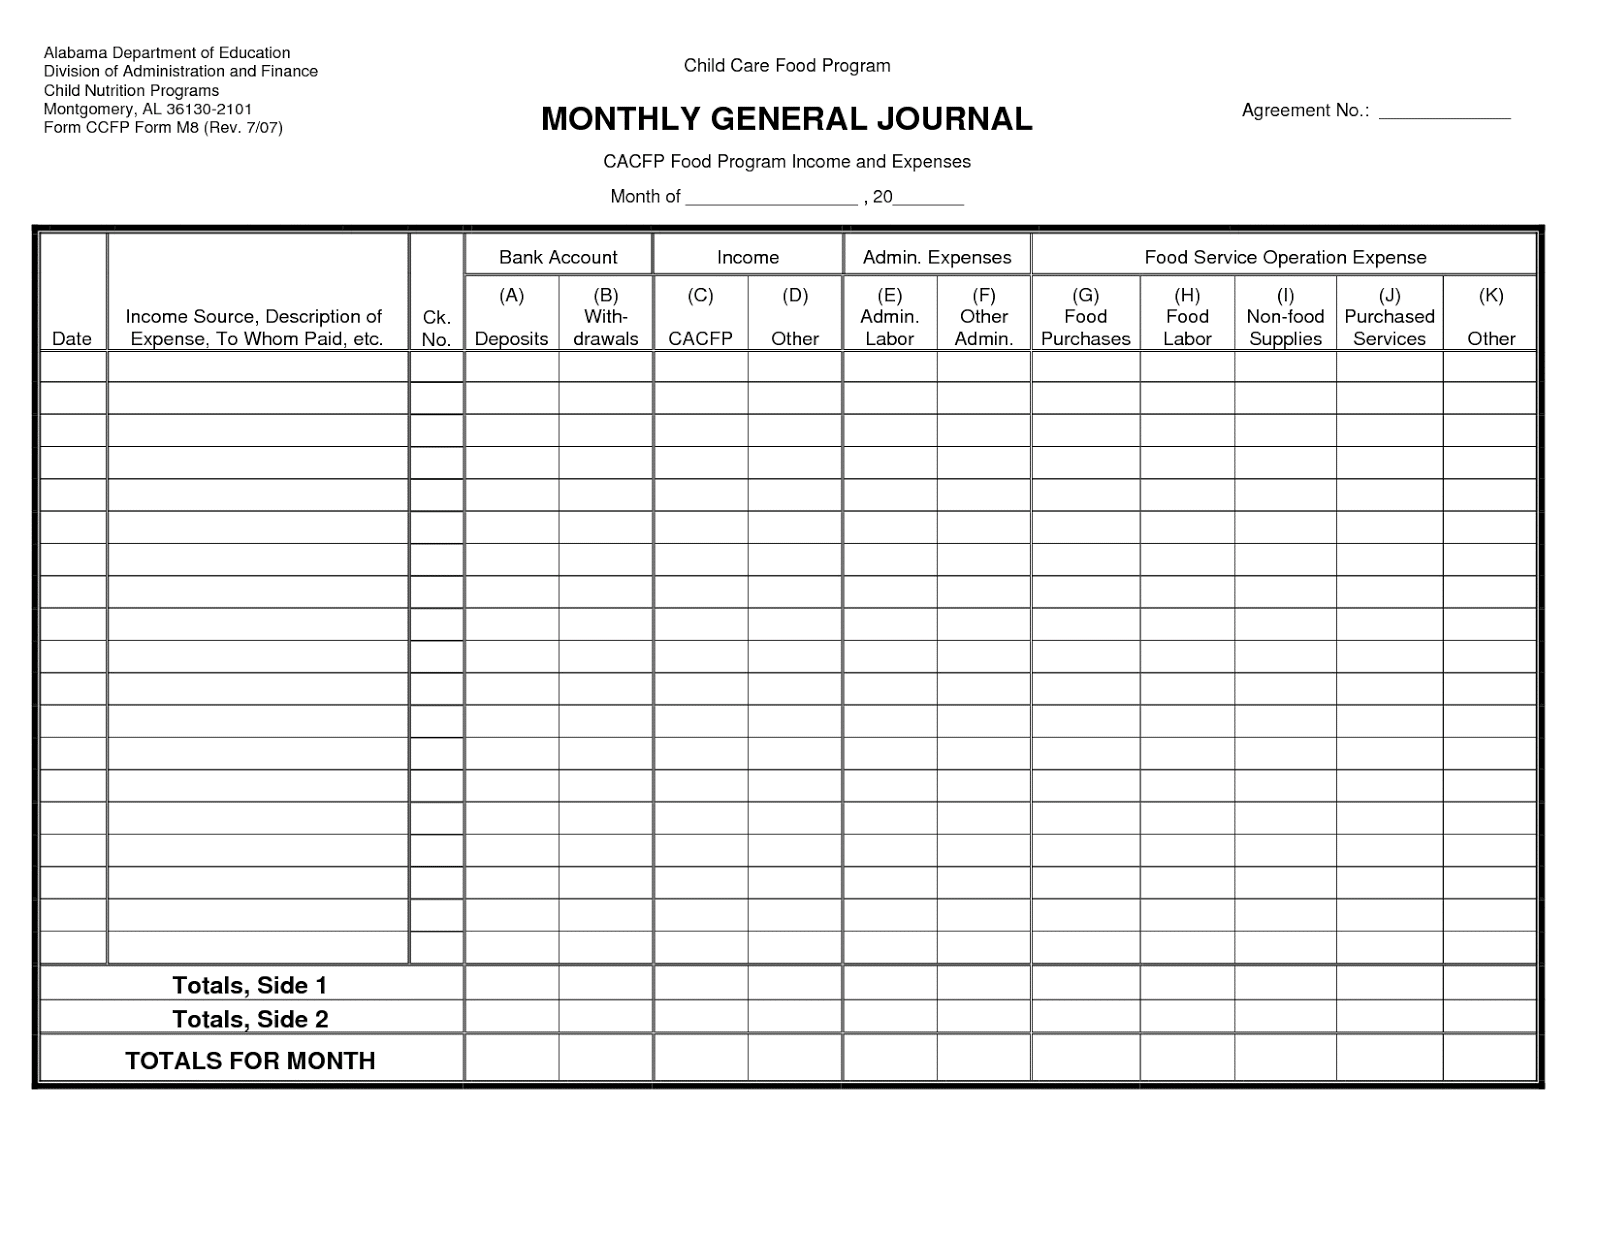 doc ledger form ledger form similar docs printable ledger template 15 general ledger templates excel pdf ledger form